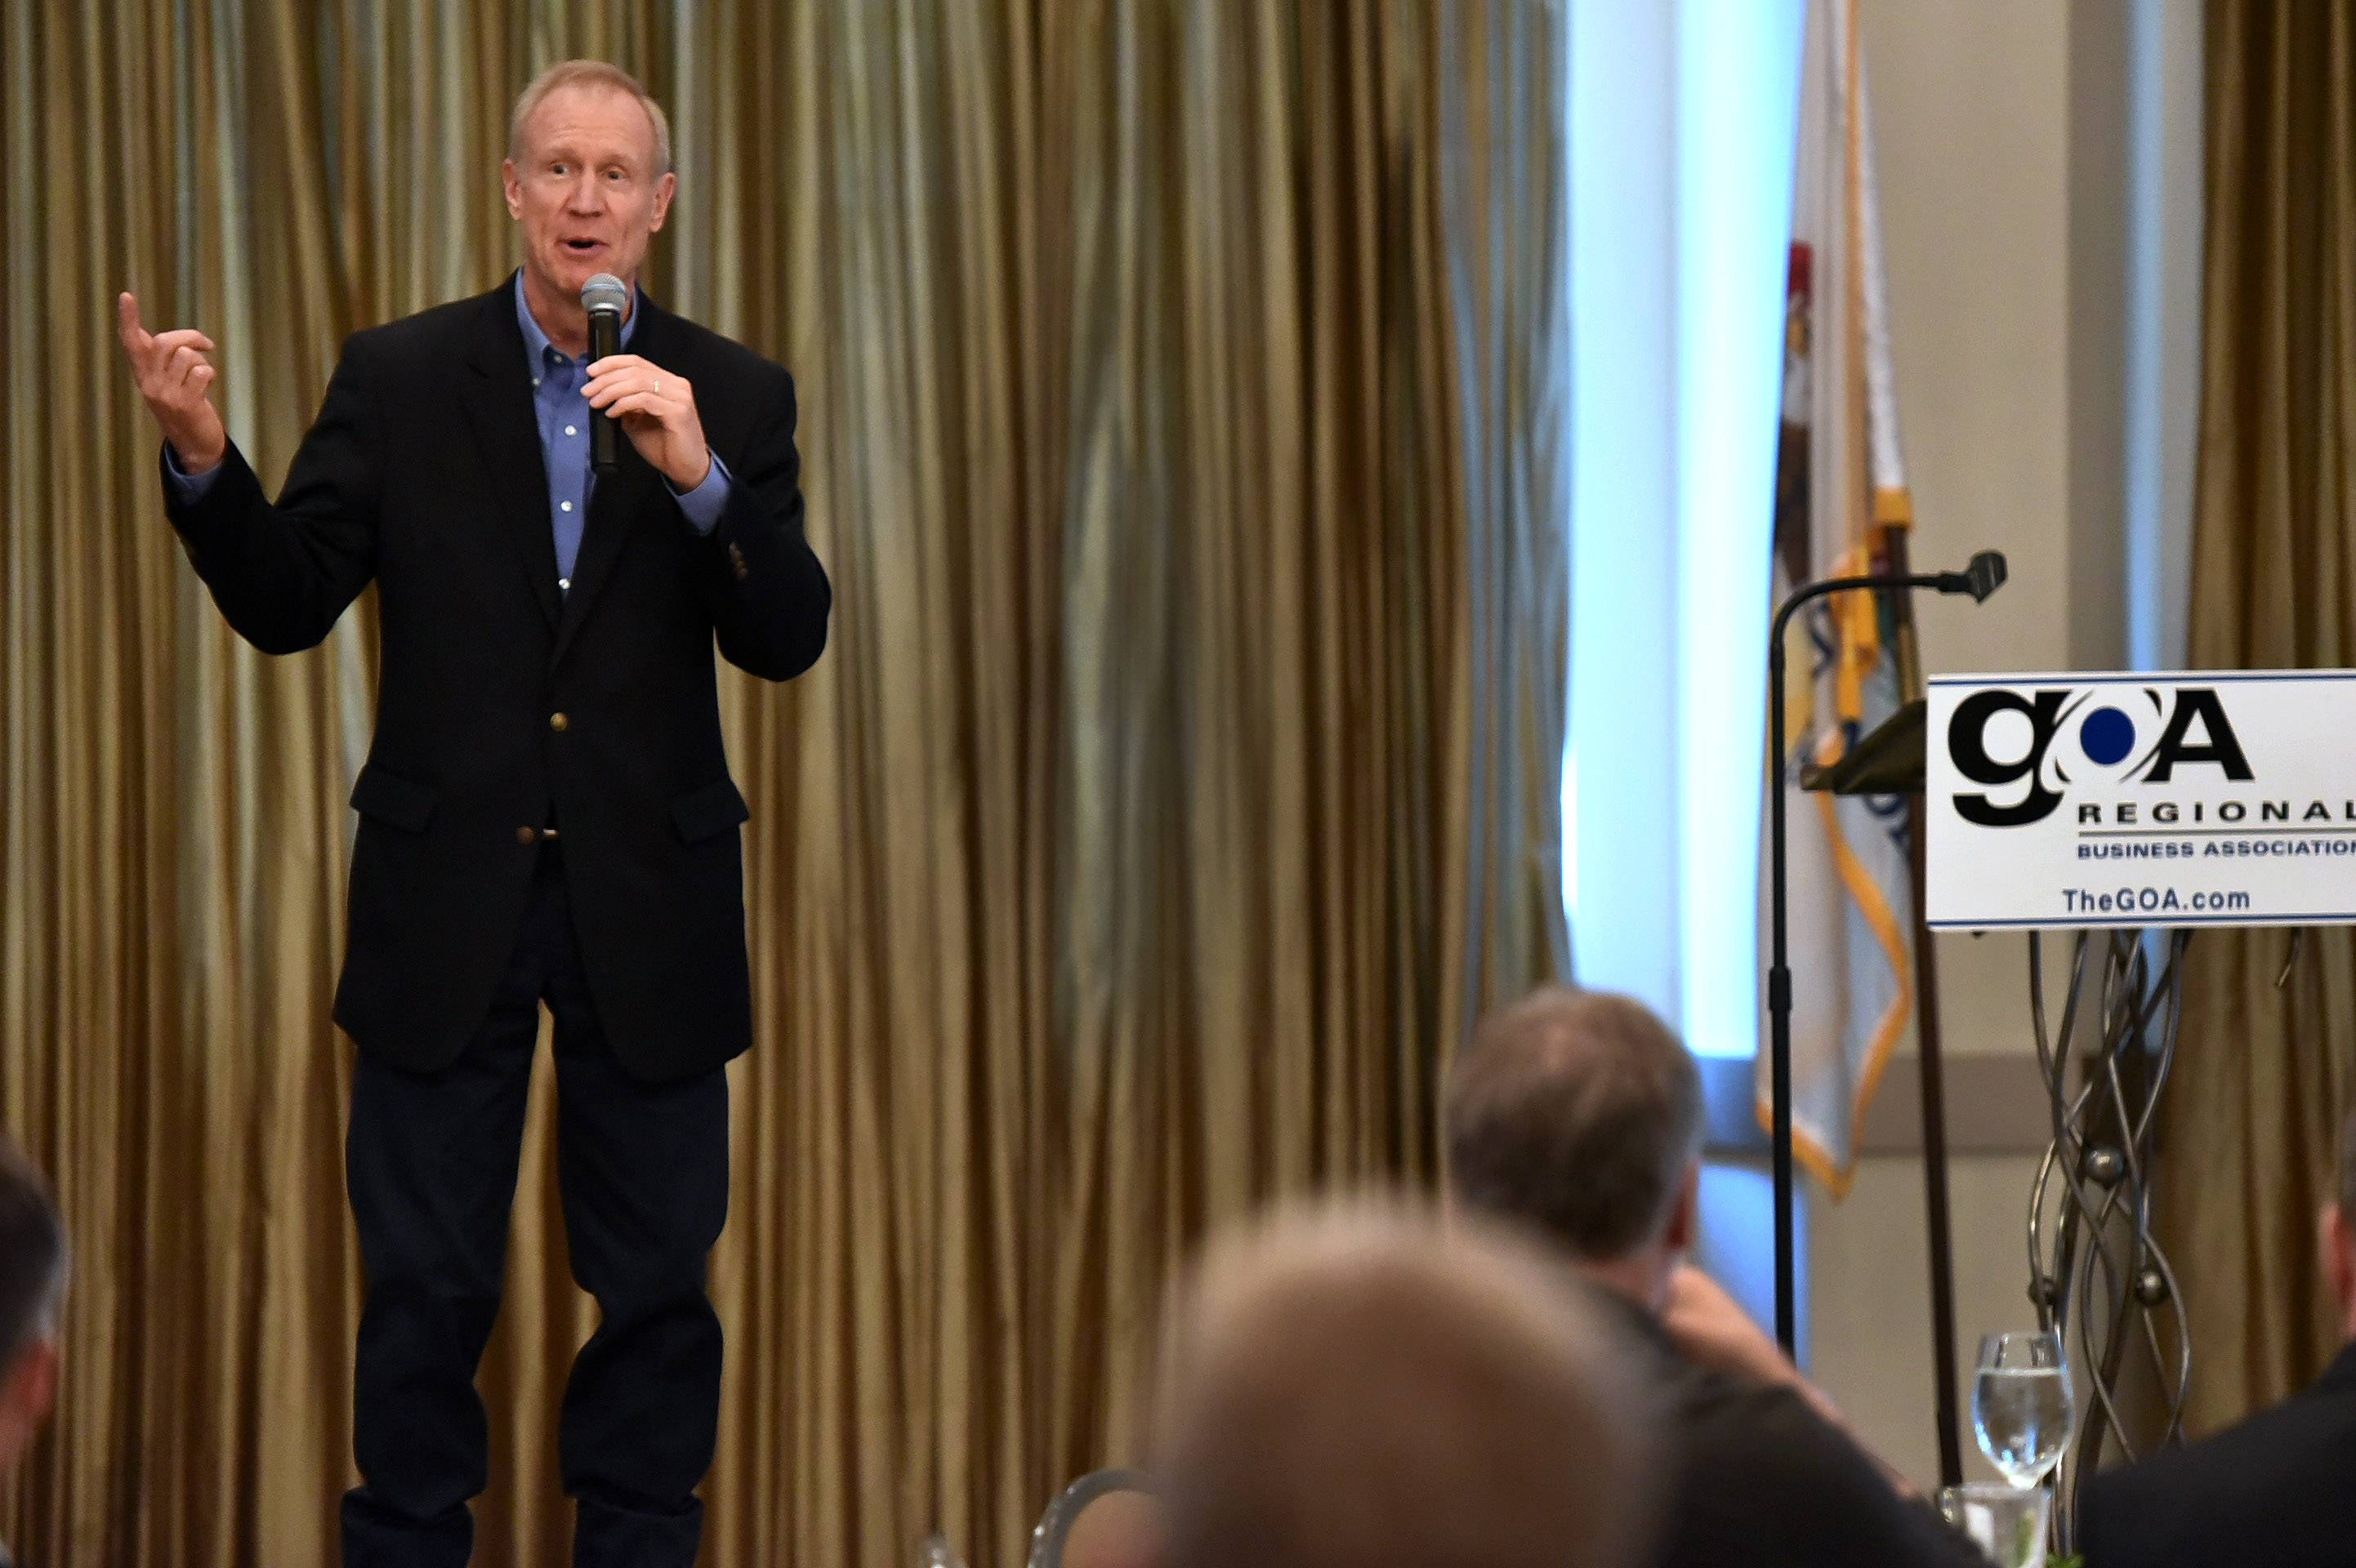 GOP Gov. Bruce Rauner addresses the Greater O'Hare Association at a lunch Wednesday at Belvedere Banquets in Elk Grove Village.